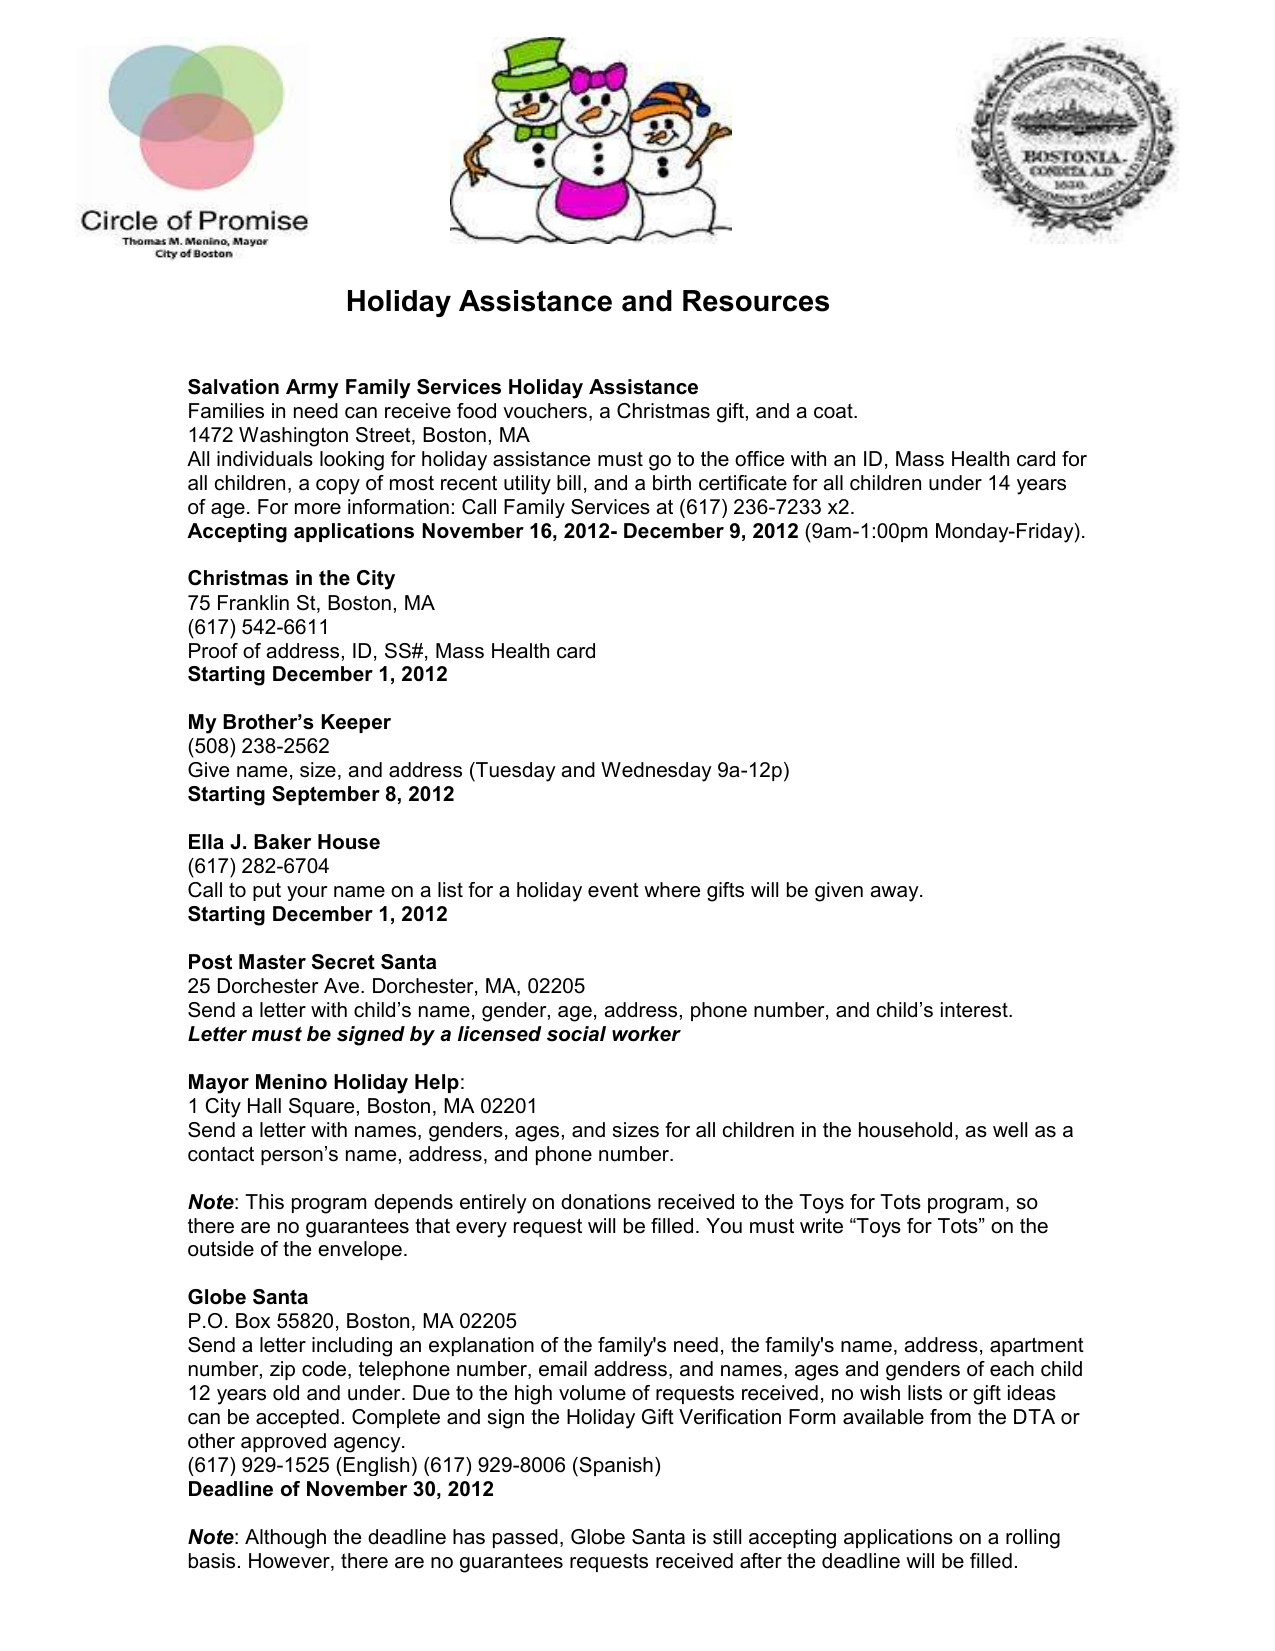 Holiday Assistance And Resources